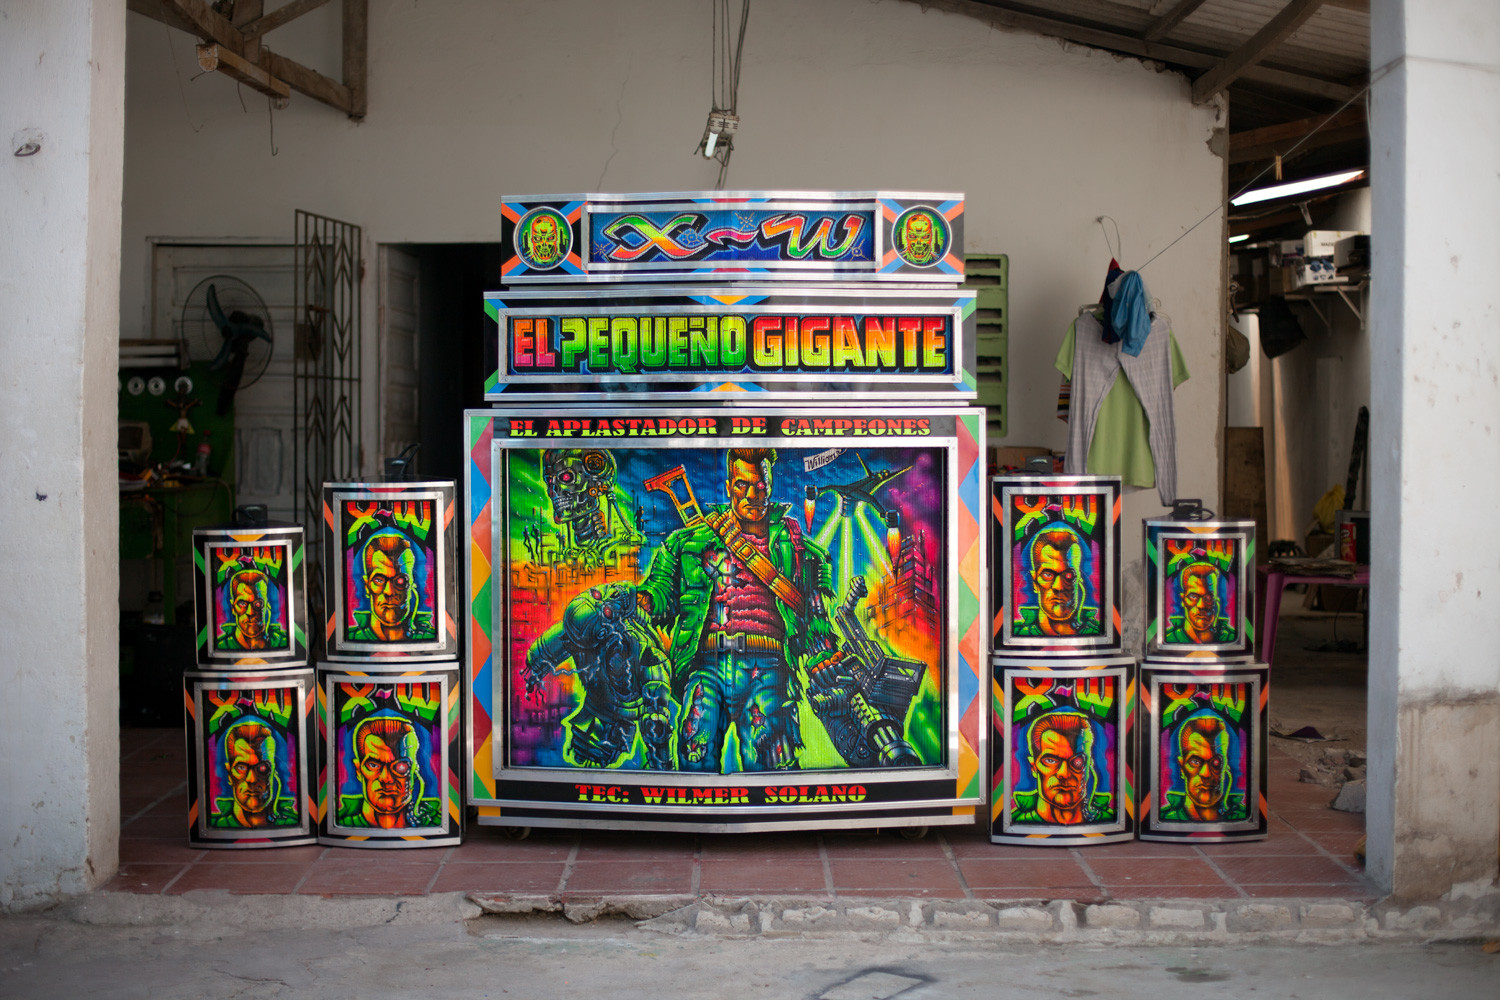 The majority of high-end pico paintings are done by Mr. William Guterrez Penaloza, an elusive artist better known in Barranquilla as Professor William. An arts professor at the Inocencio Chinca College of Barranquilla by day, and a revered pico-artist by night.